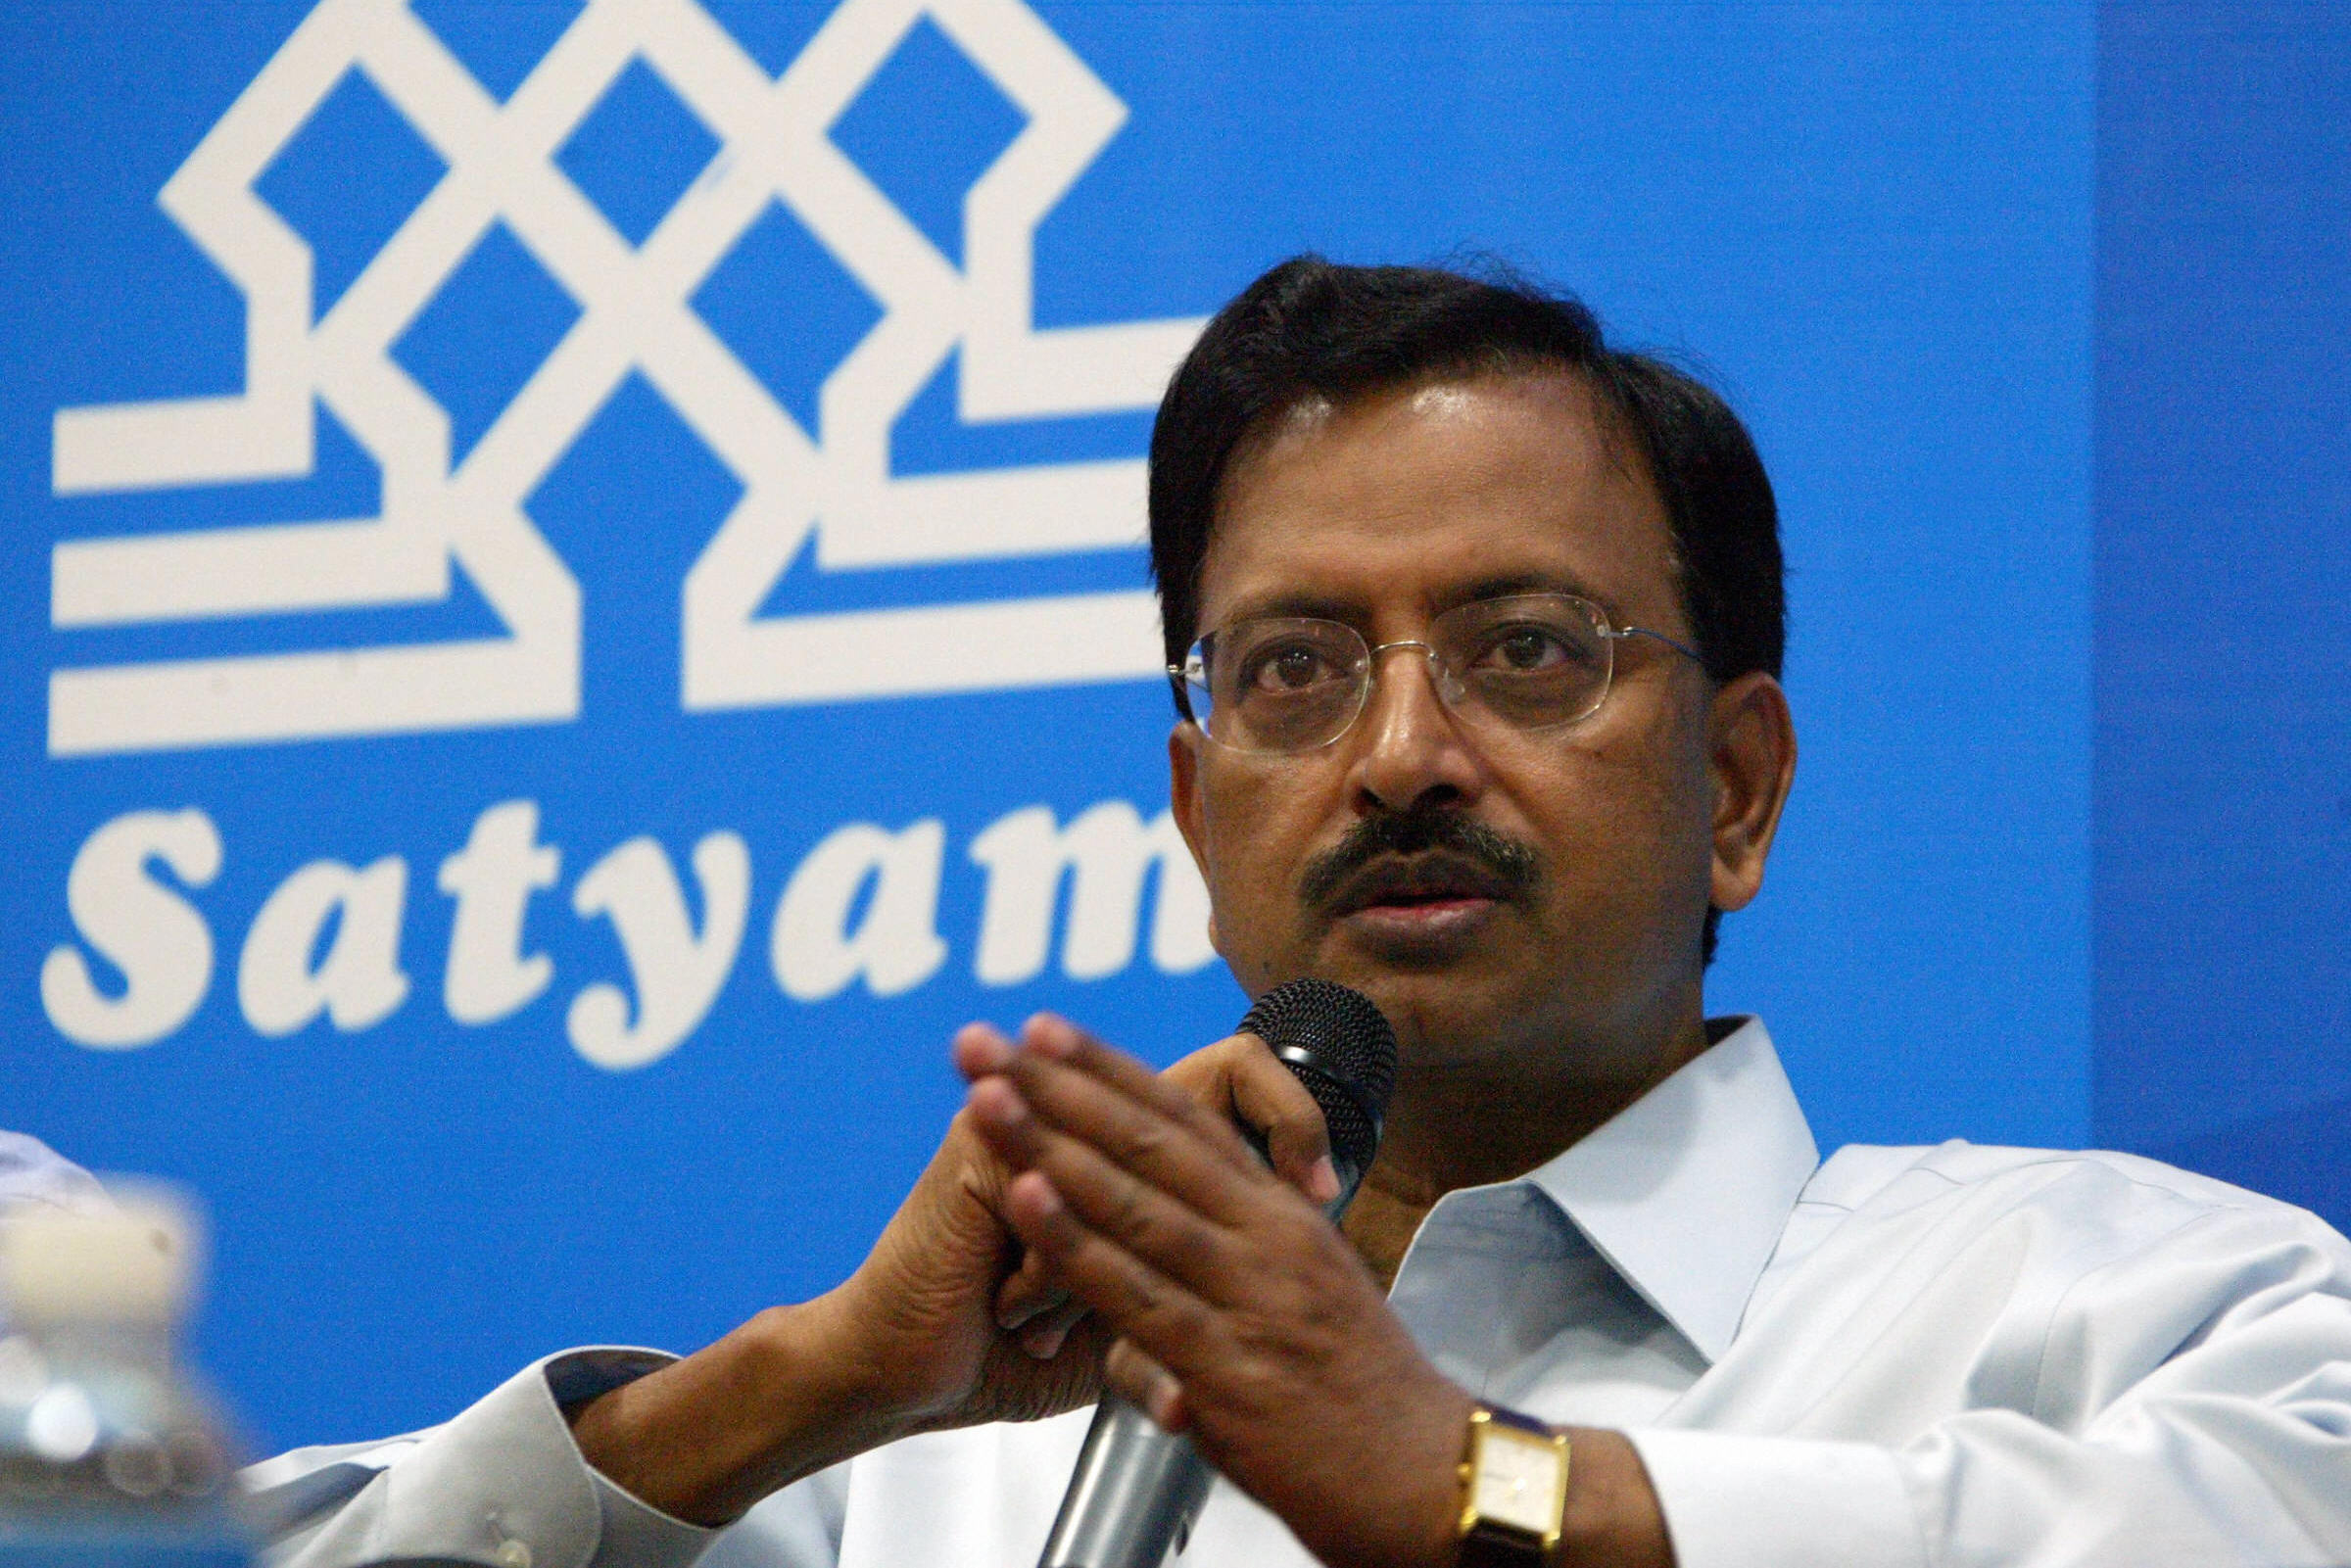 Chairman and founder of Satyam Computer